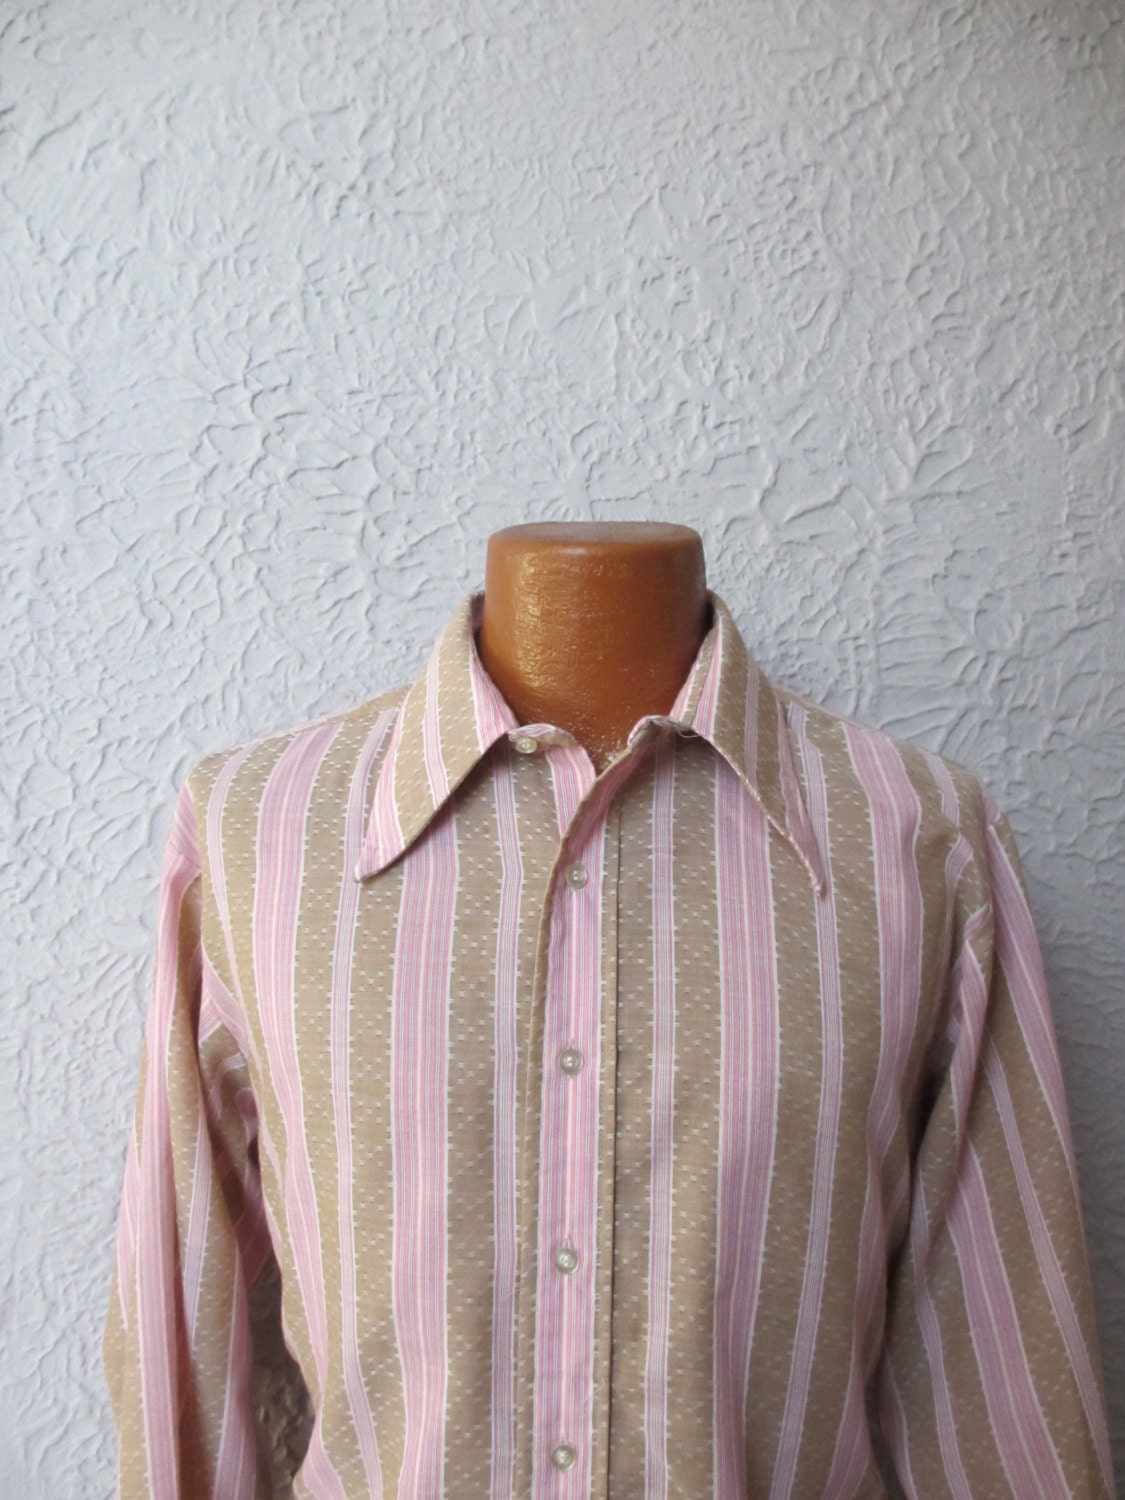 70s Vintage Mens Mod Hippie Striped Shirt Now Breed Etsy Hoc Store Batik French Cuff Zoom